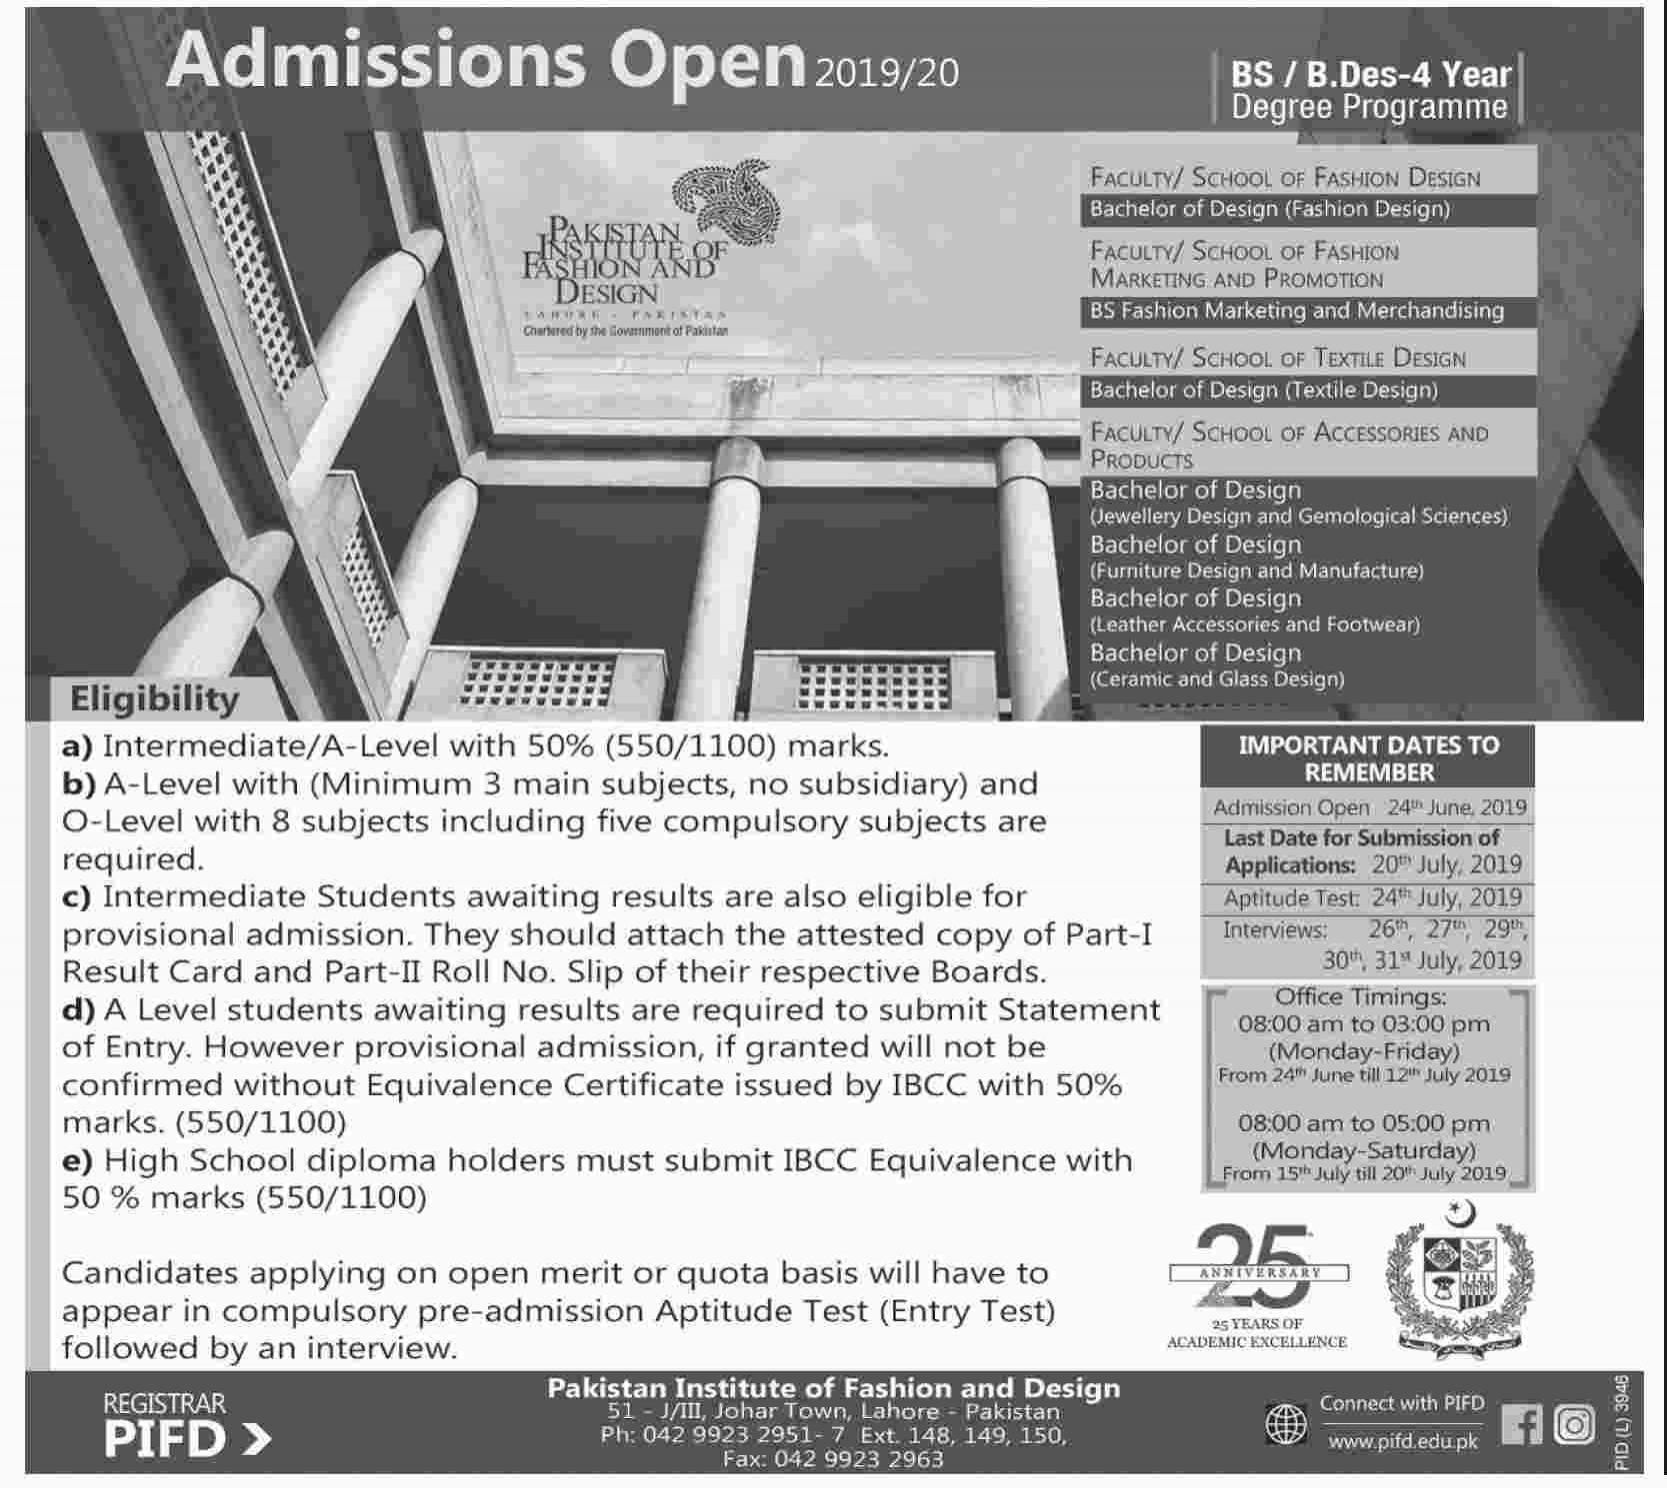 Pakistan Institute Of Fashion And Design Admissions Open 2019 20 Jobs